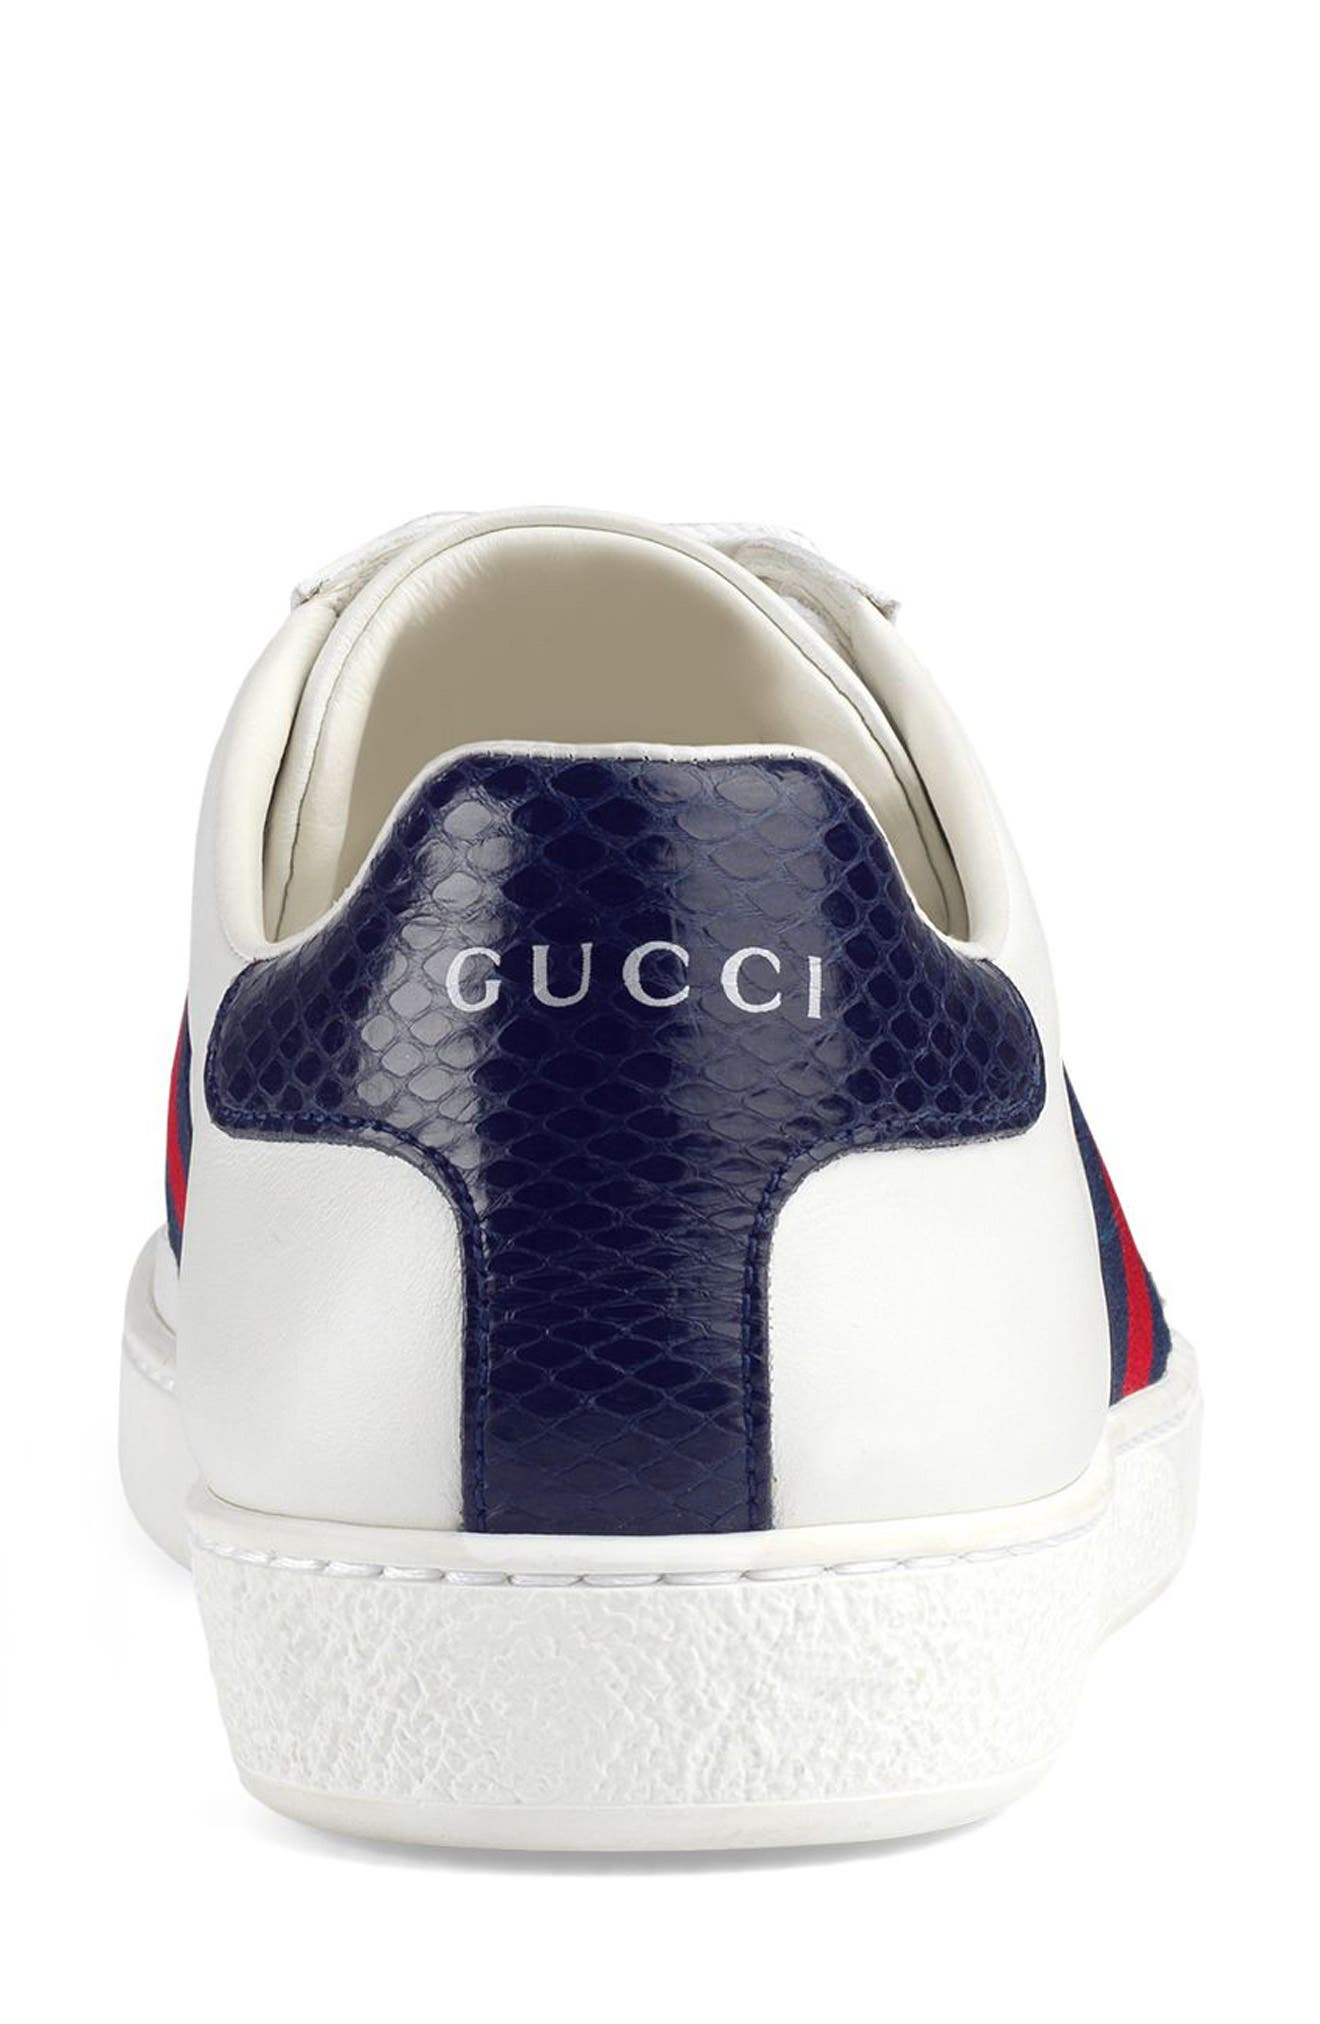 GUCCI,                             'New Ace' Sneaker,                             Alternate thumbnail 5, color,                             101